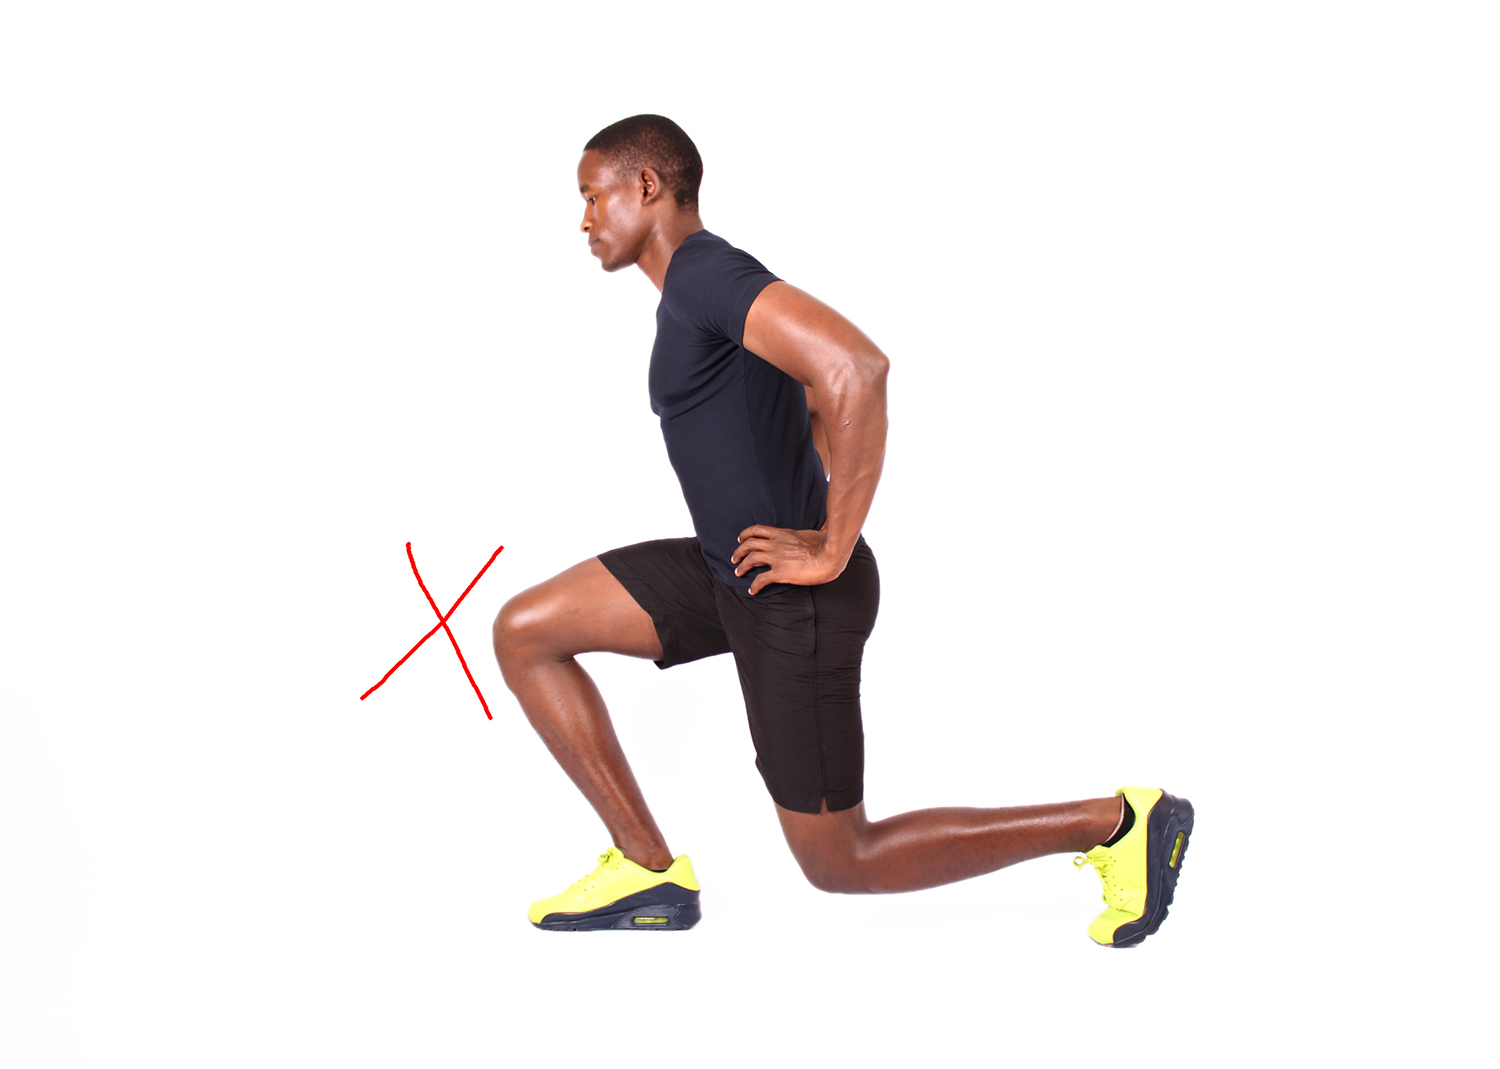 Man not performing lunges properly